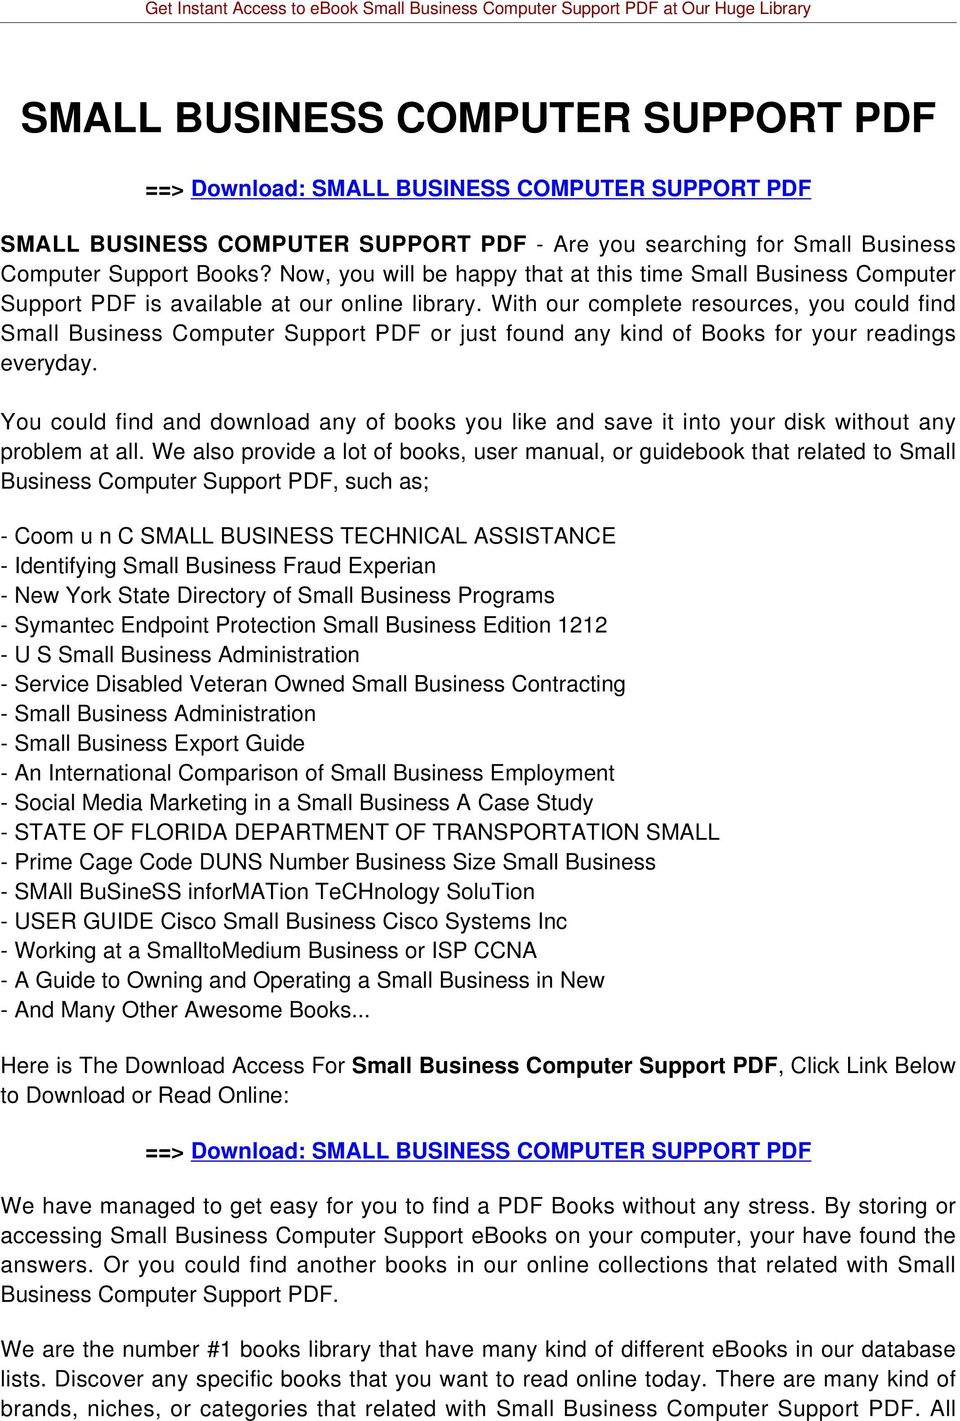 With our complete resources, you could find Small Business Computer Support PDF or just found any kind of Books for your readings everyday.